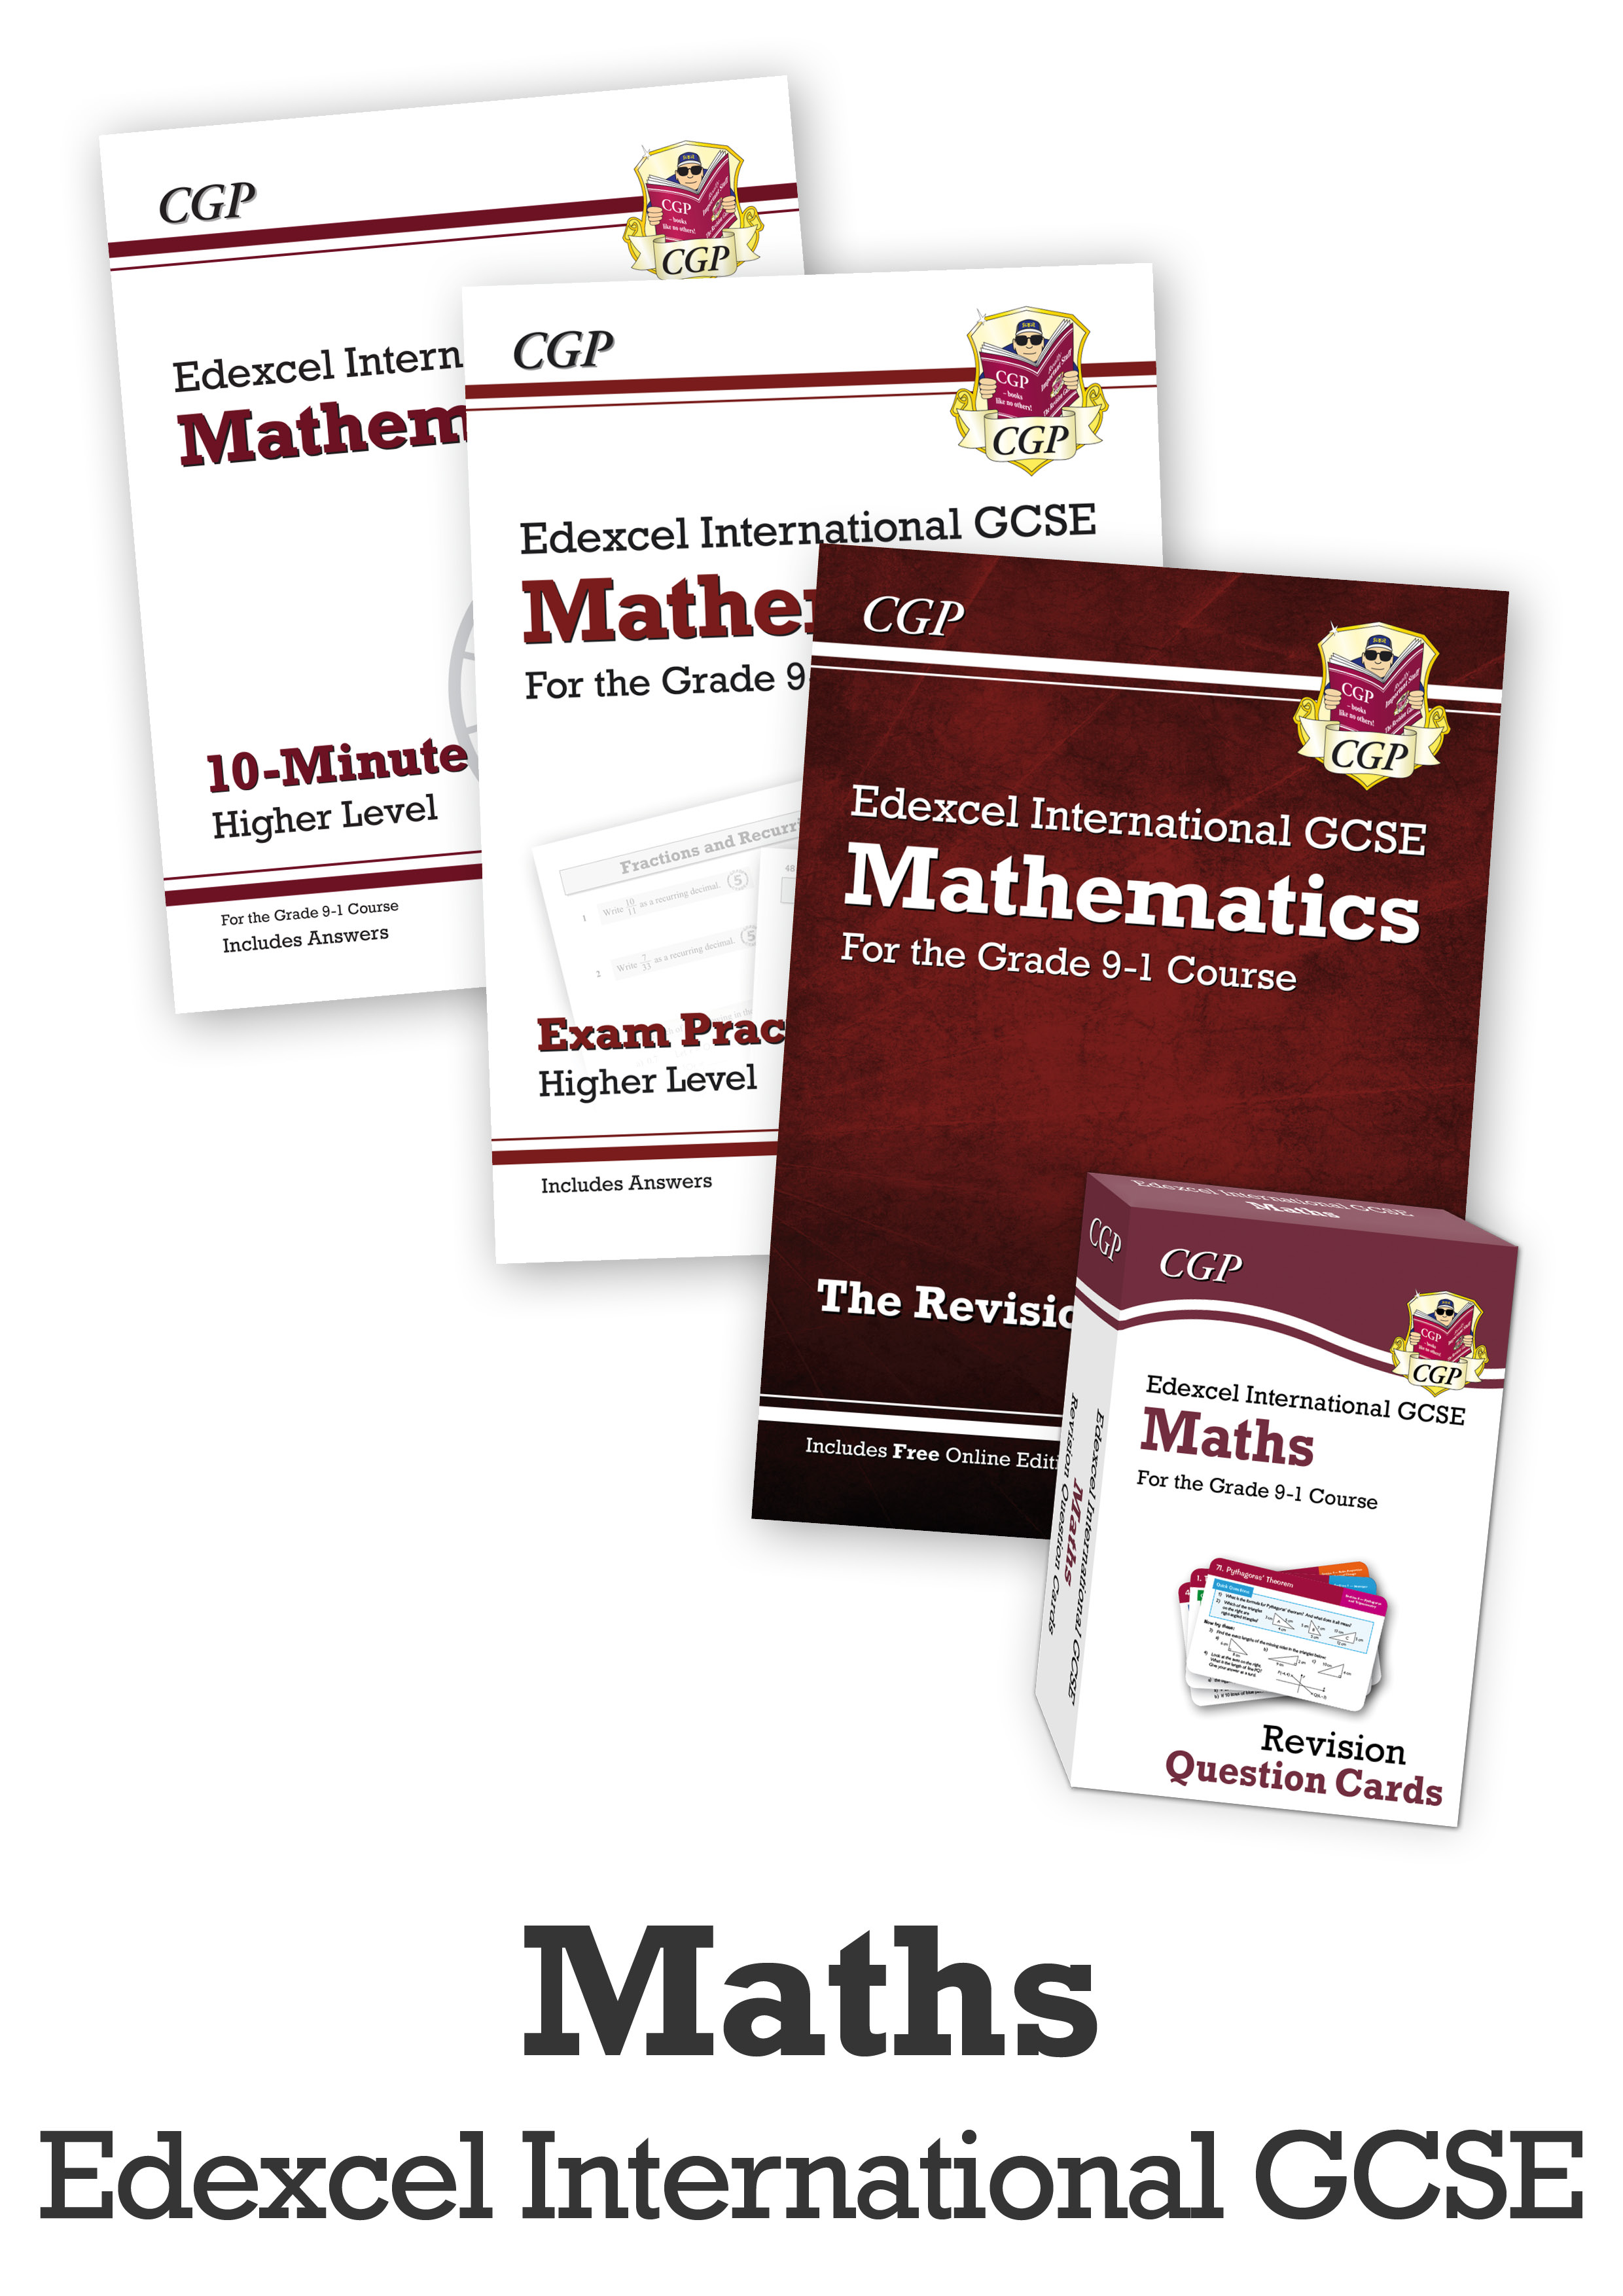 MECUBI41 - GCSE Home Learning Essentials Bundle: Edexcel International GCSE Maths